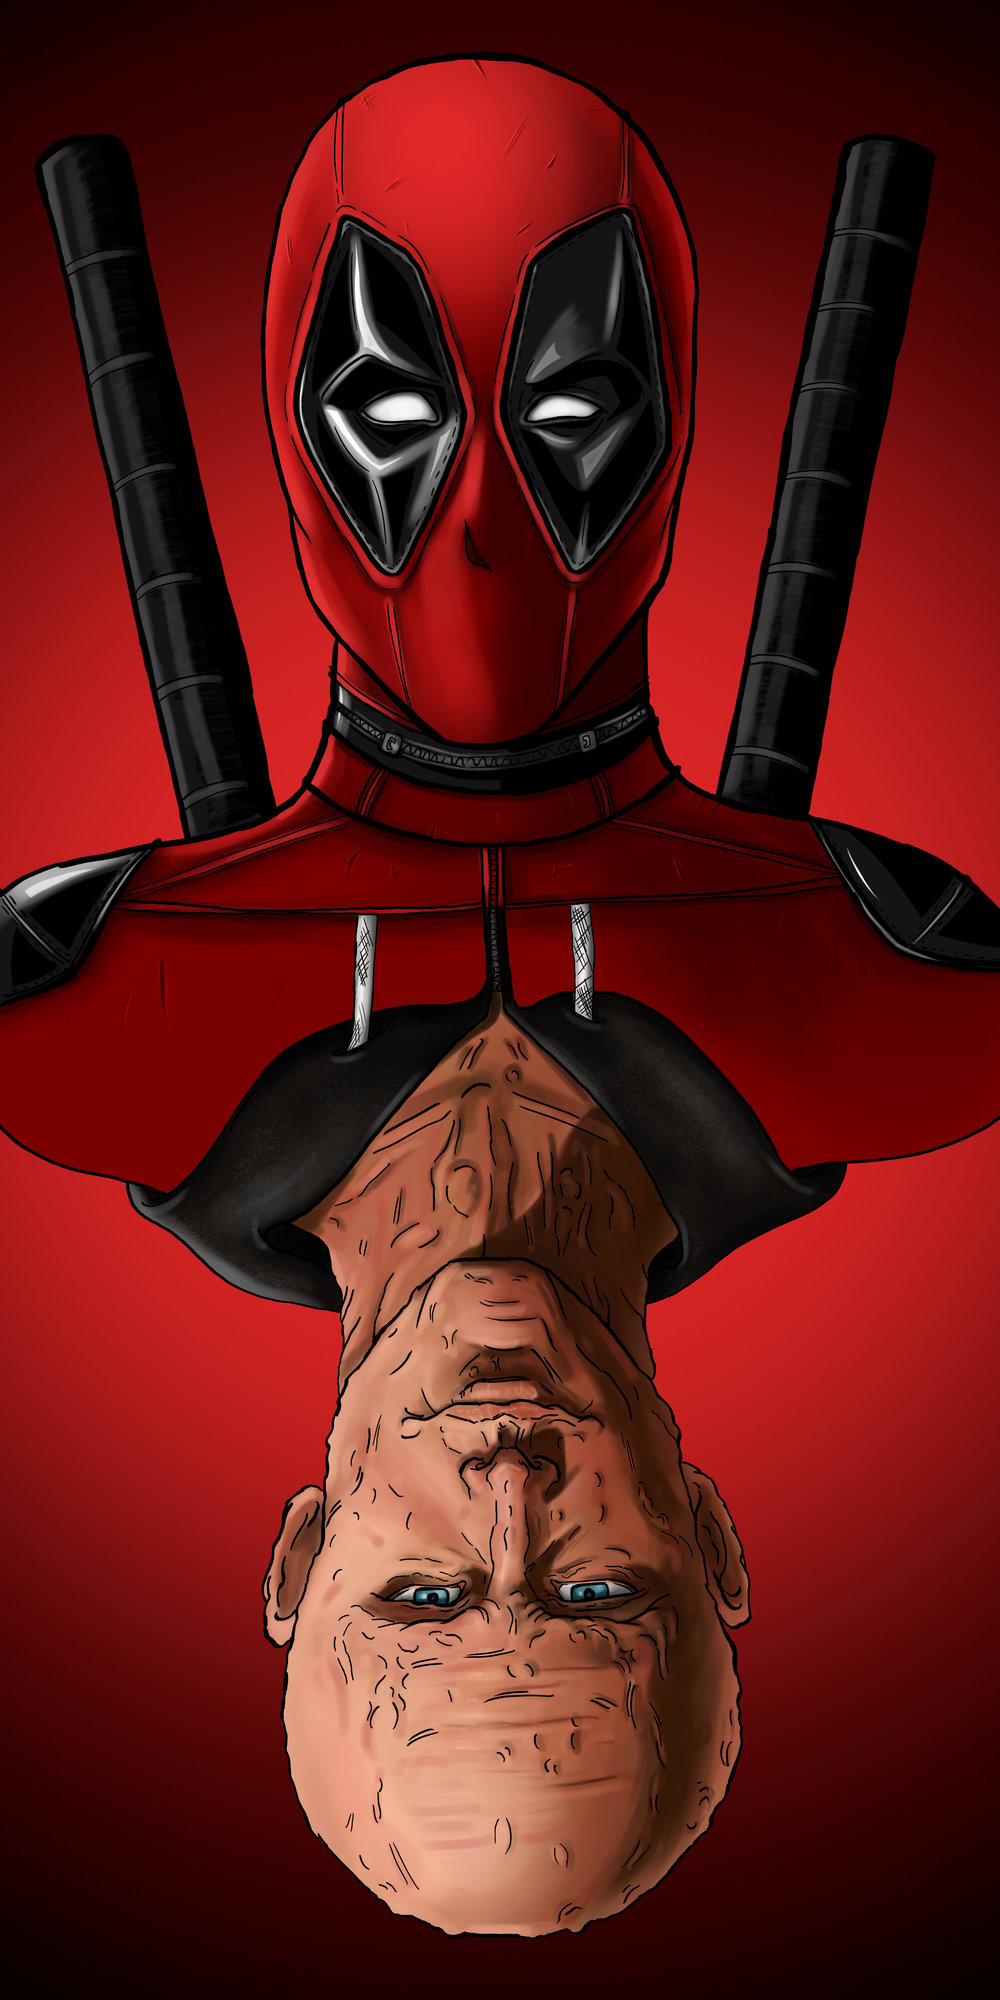 5) Next it was just adding the background, under the deadpool layers. Simply laid down a black layer and then with a soft brush and fade I added the red.